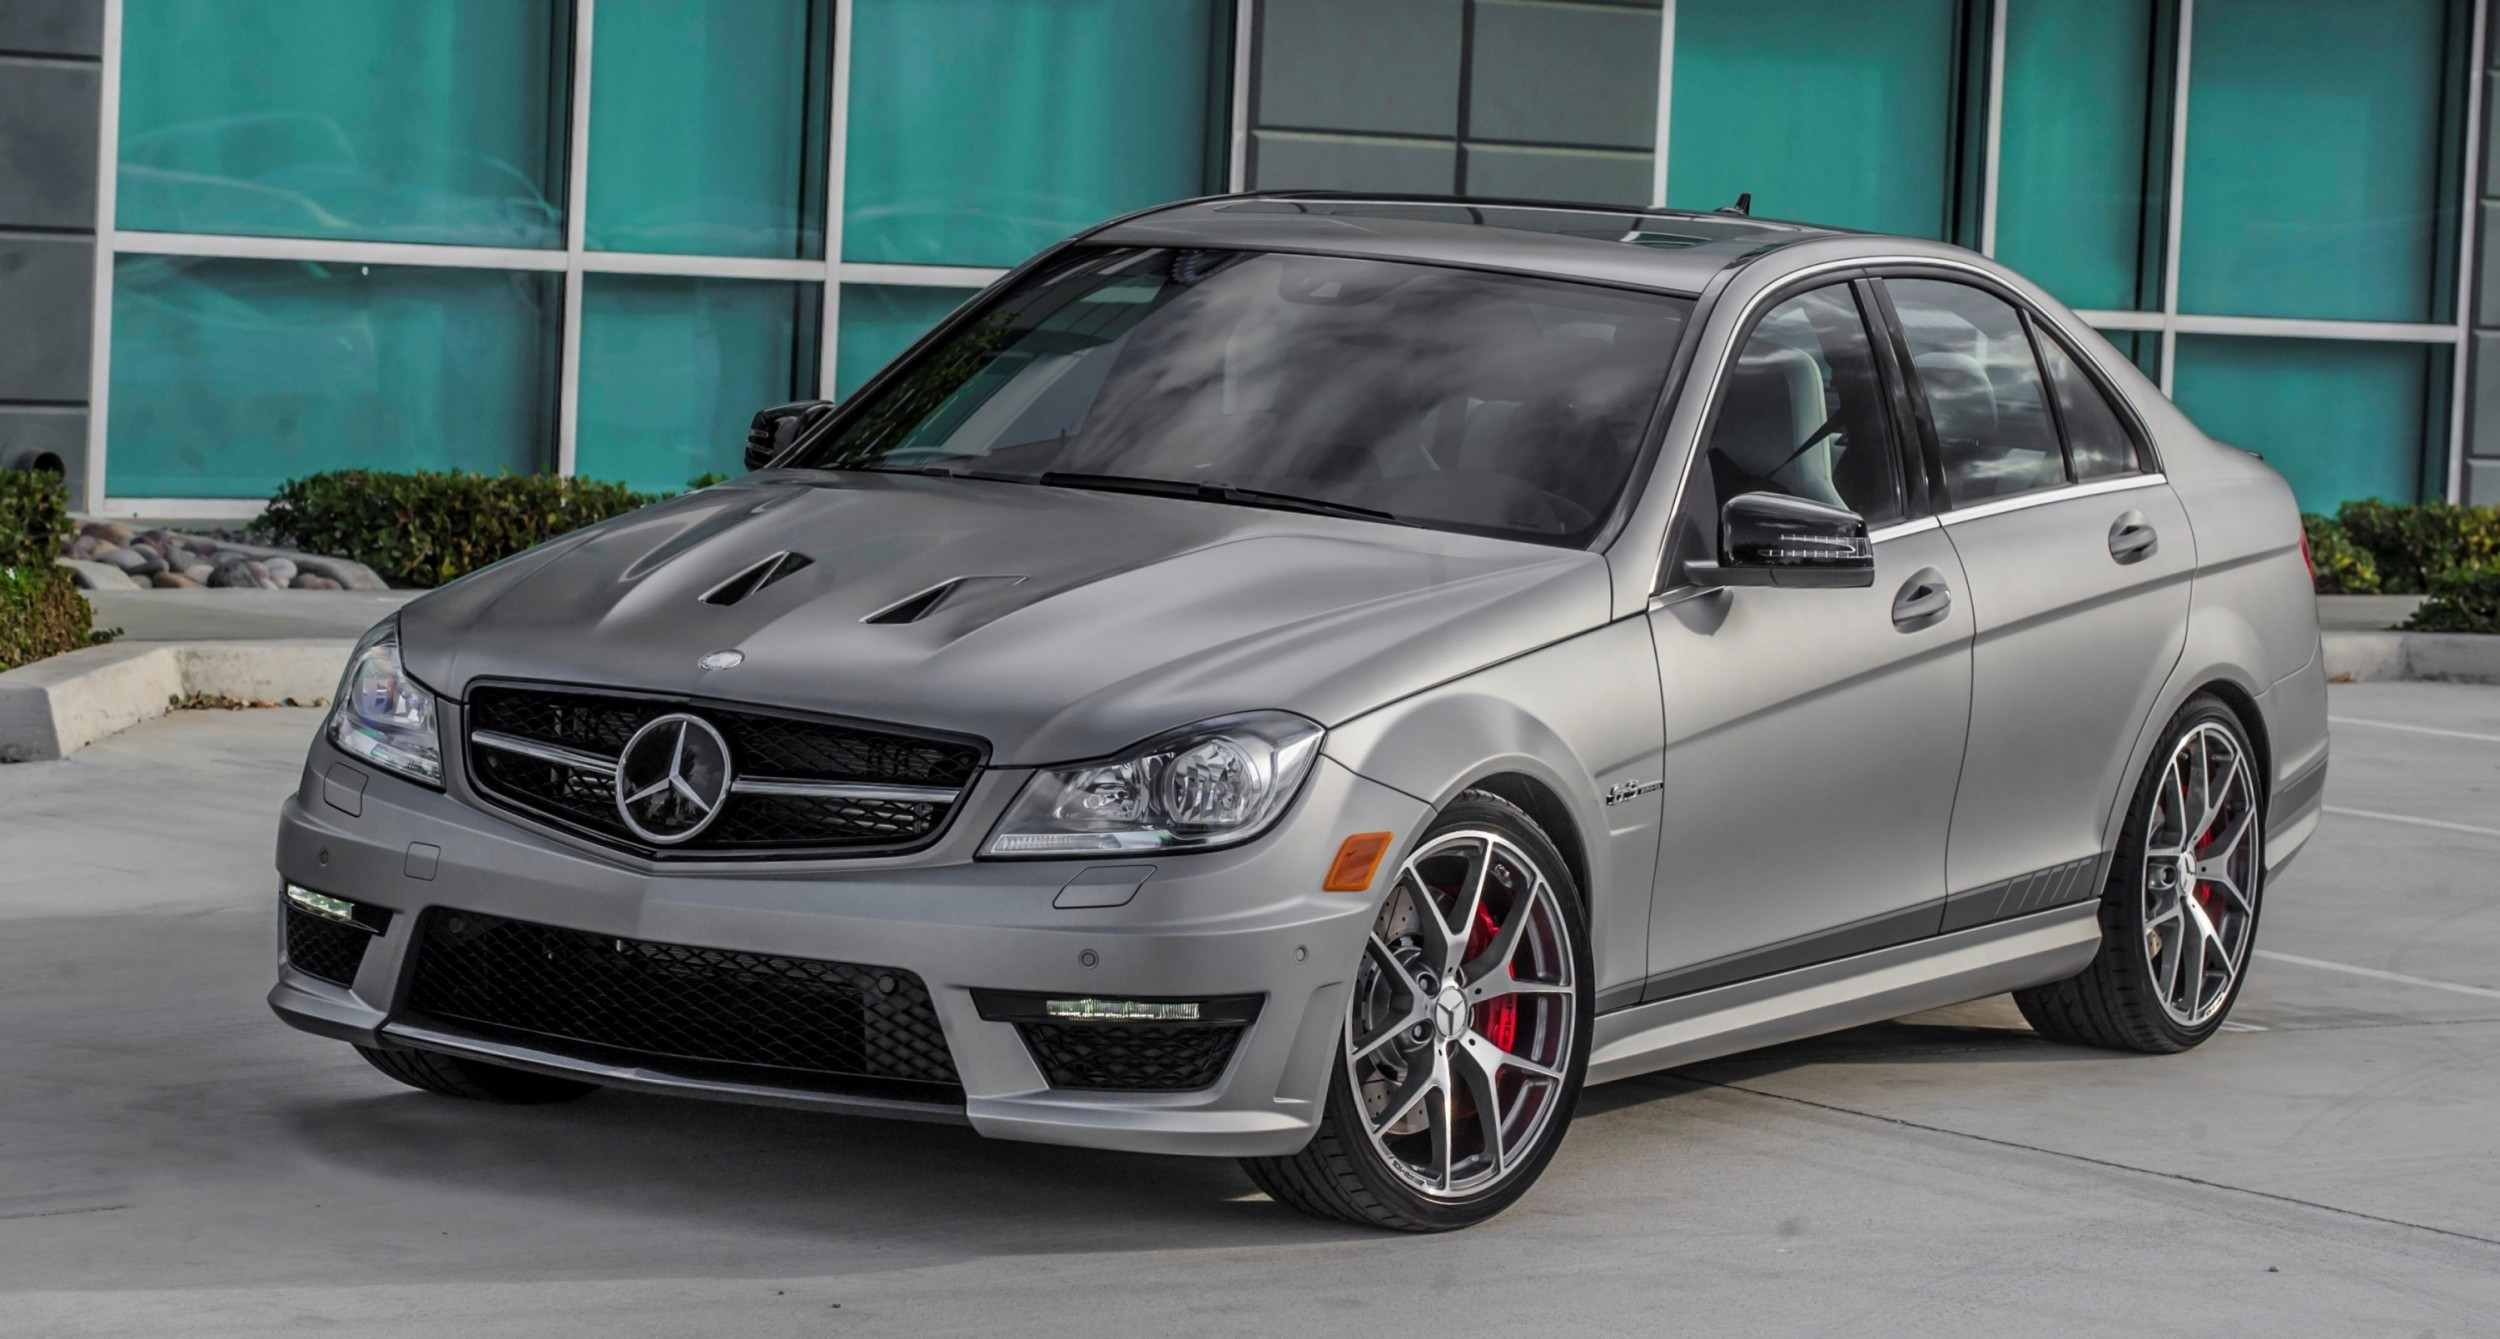 2014 c63 amg edition 507 sedan and coupe going out with v8 flash bang. Black Bedroom Furniture Sets. Home Design Ideas